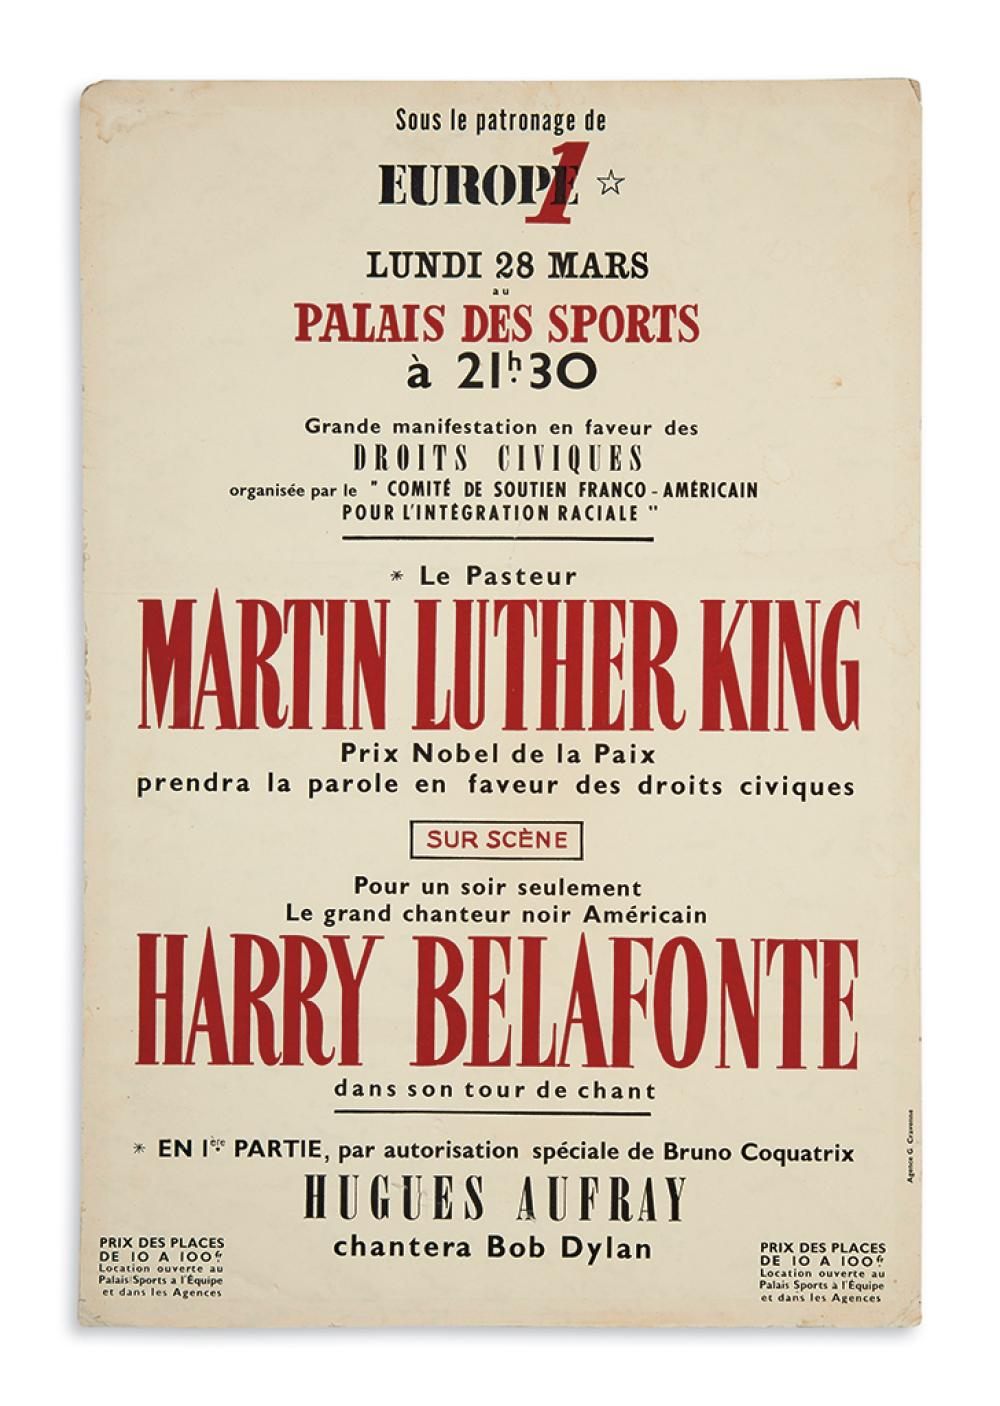 (KING, MARTIN LUTHER, JR.) Another poster for the French appearance by Dr. King and Harry Belafonte.